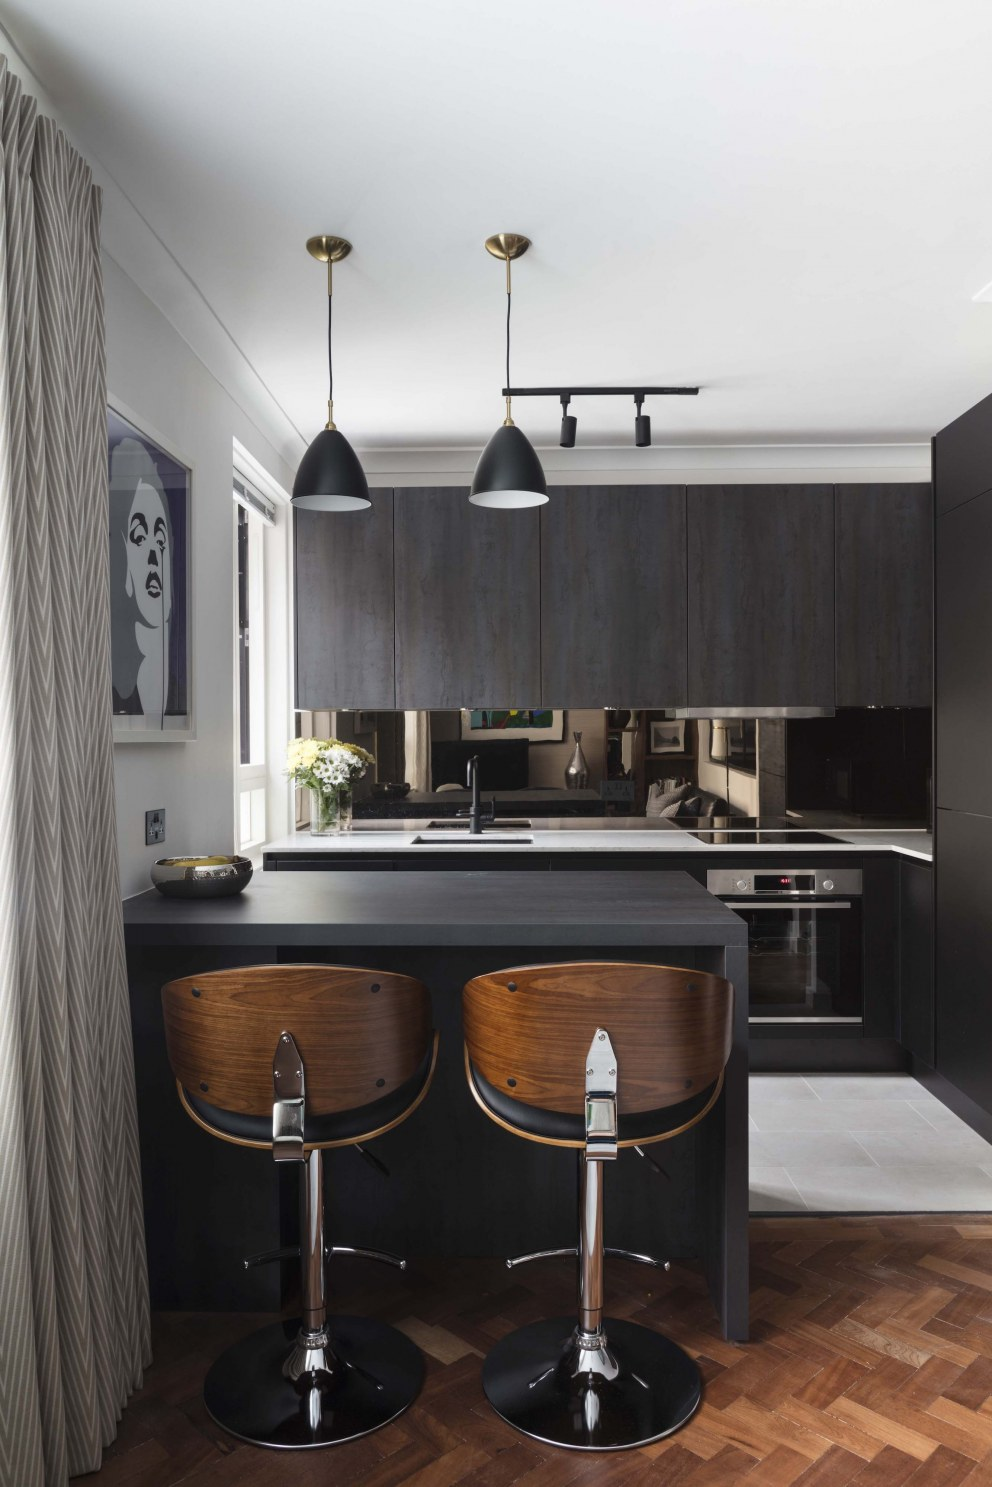 London Pied a terre  | Kitchen Space | Interior Designers